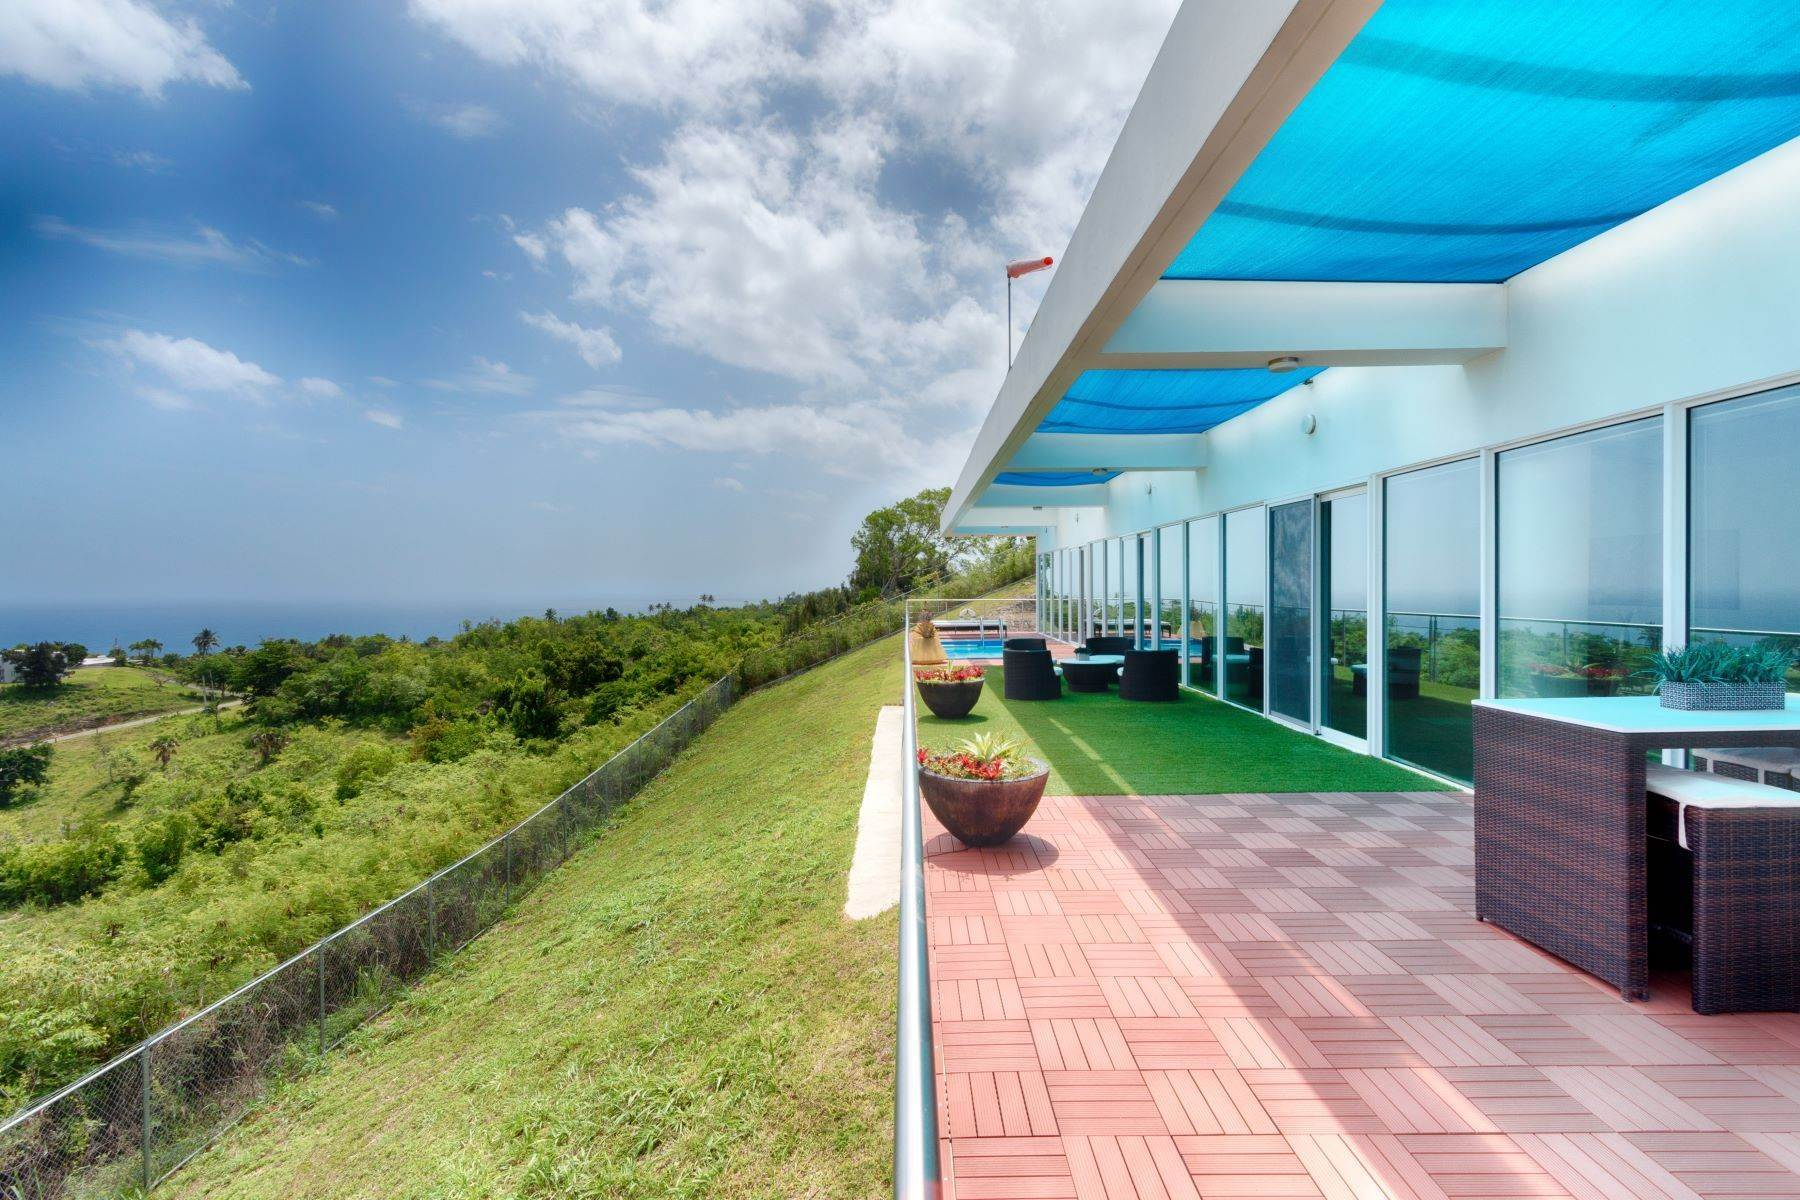 9. Single Family Homes for Sale at Self-Sustainable Luxury Home at Porta del Sol Calle San Jose Km 2.2 Quebradillas, 00678 Puerto Rico